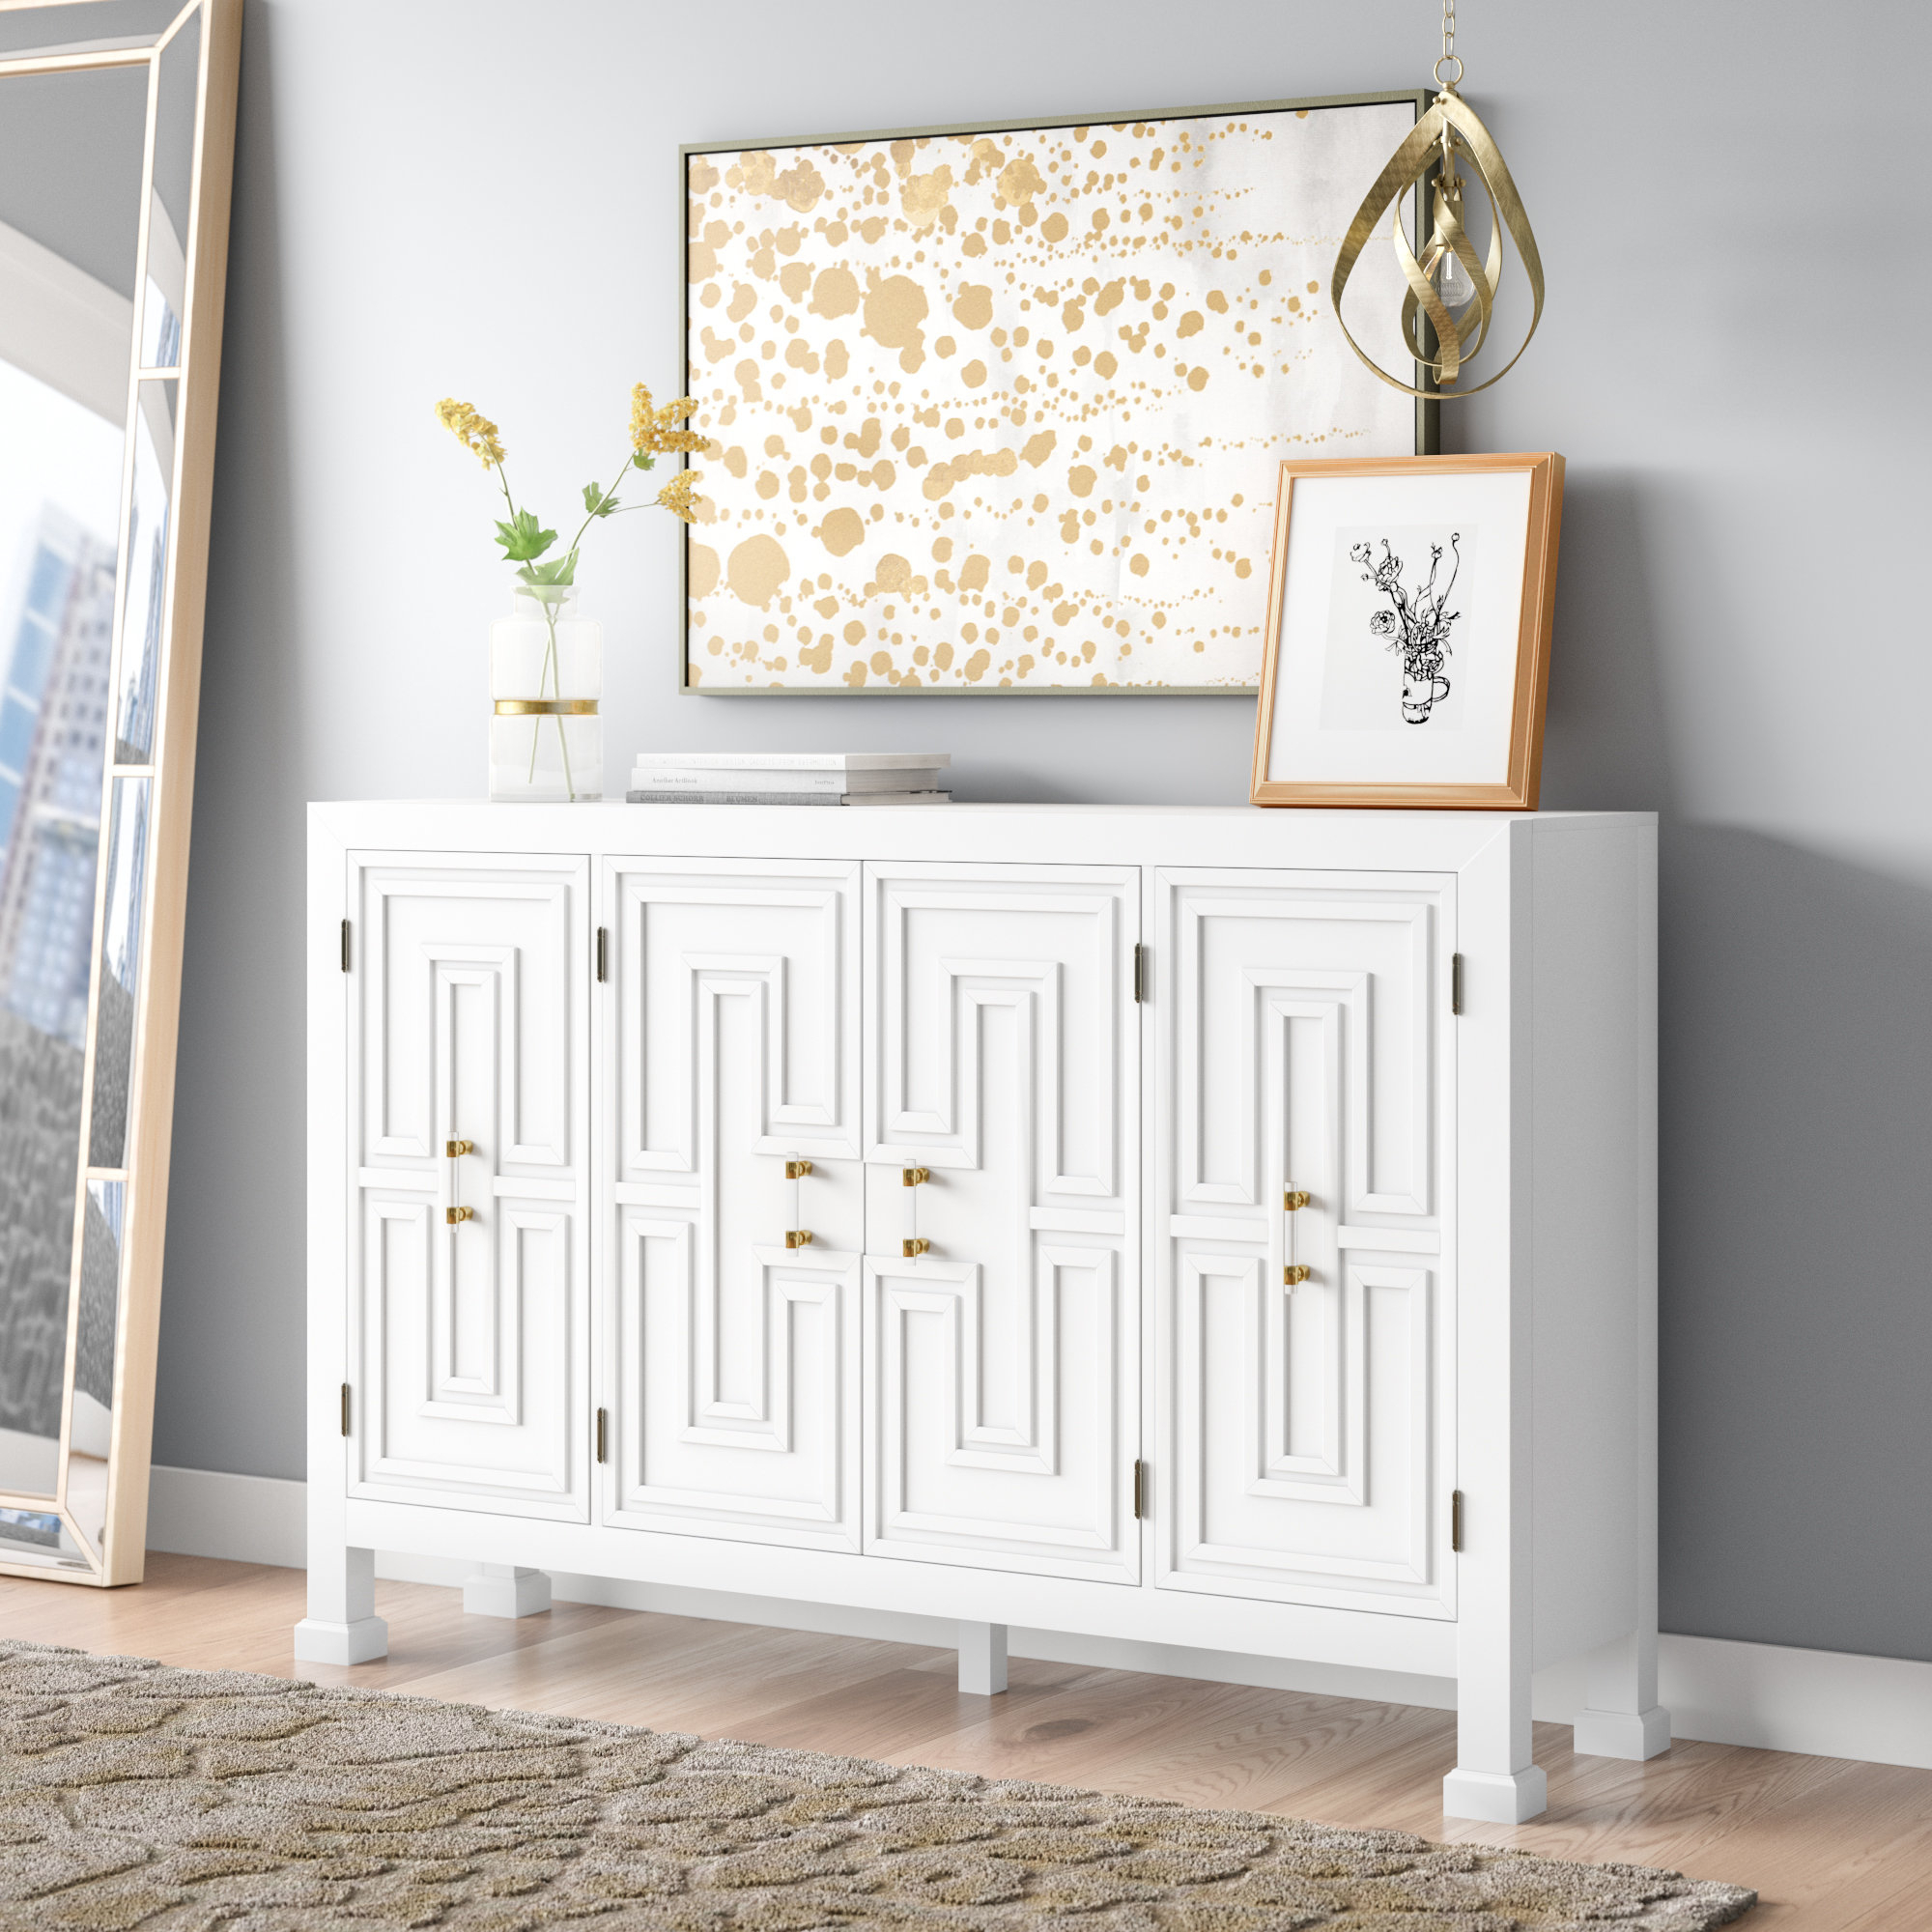 Mercer41 Lainey Credenza & Reviews | Wayfair pertaining to Lainey Credenzas (Image 16 of 30)